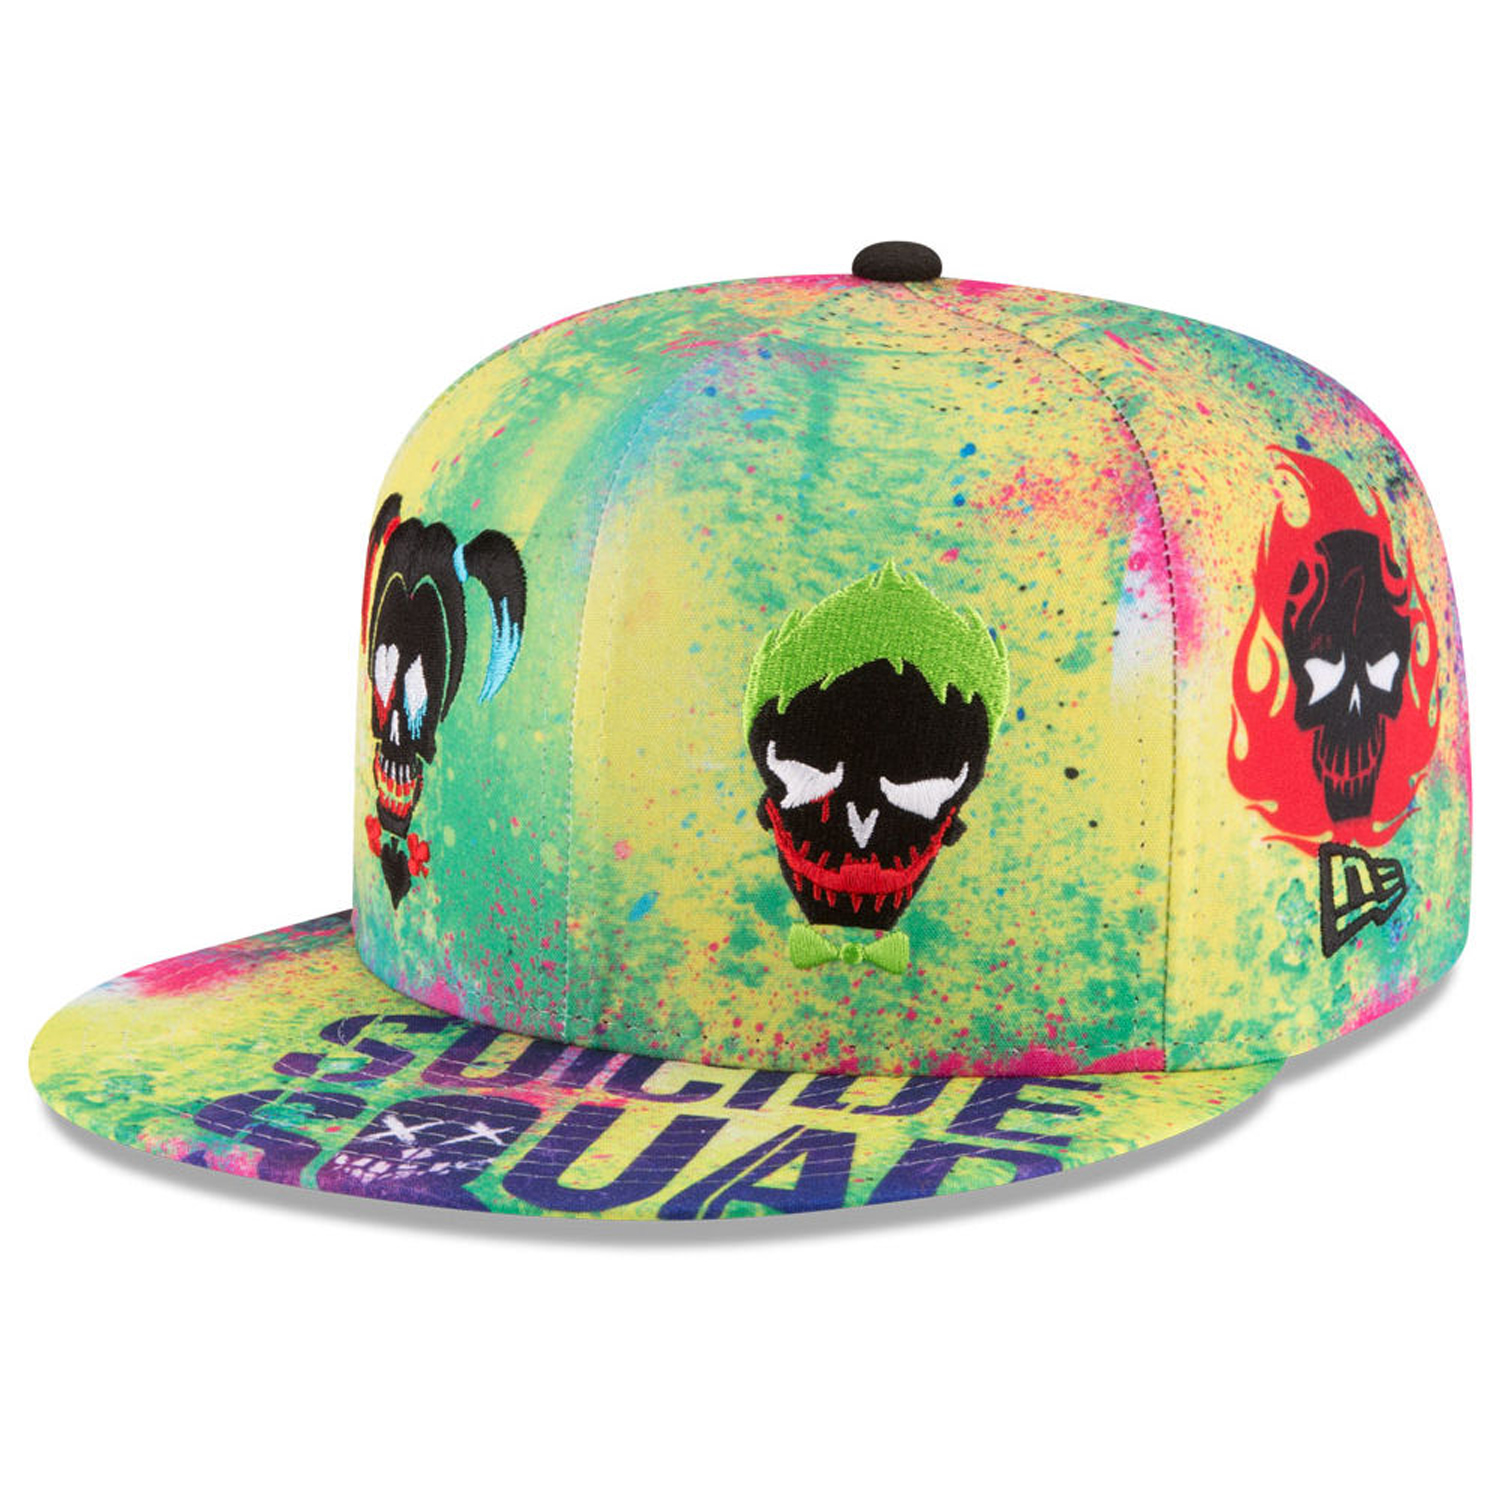 Details about New Era DC Comics Suicide Squad All Over Skulls 59Fifty Fitted  Cap Hat d37d3b984e5